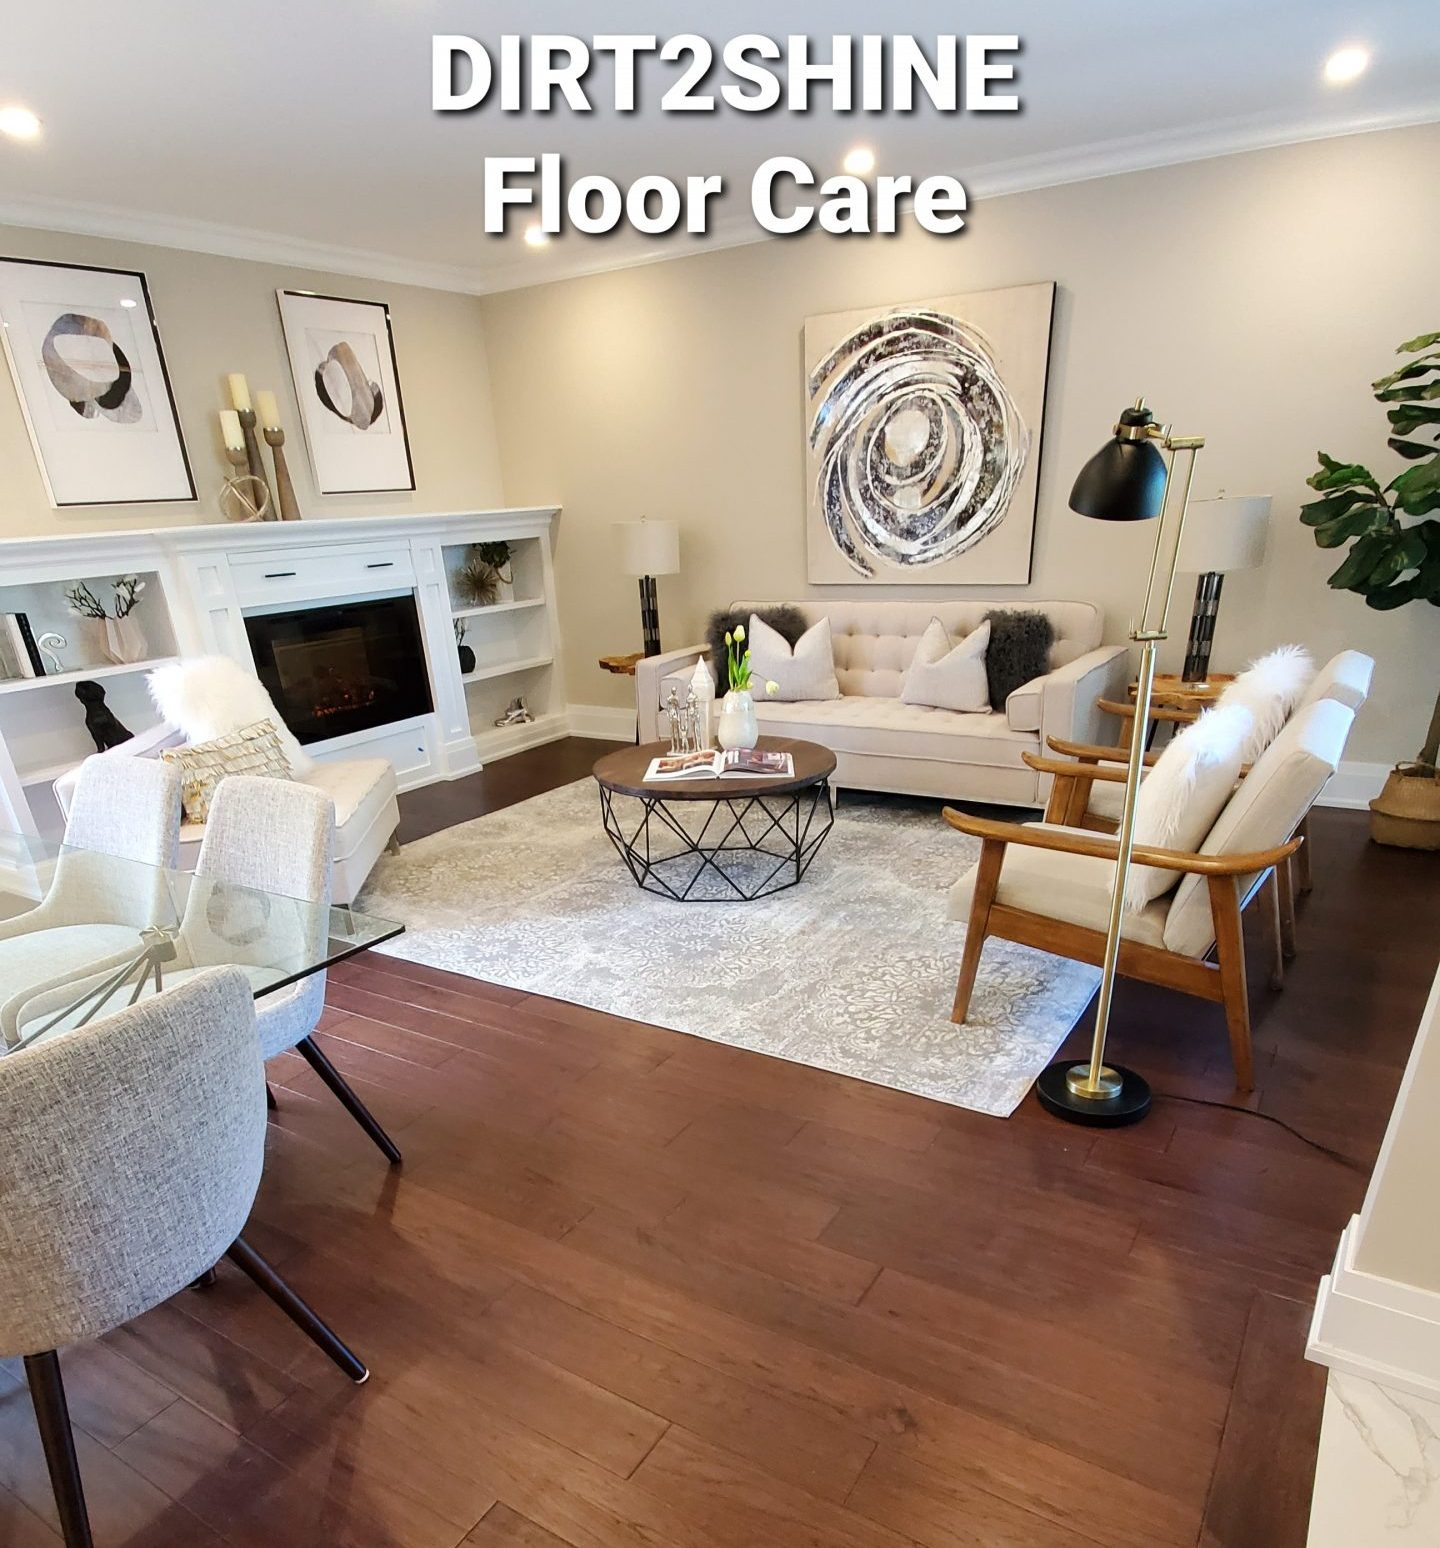 Grout Cleaning Hardwood And Natural